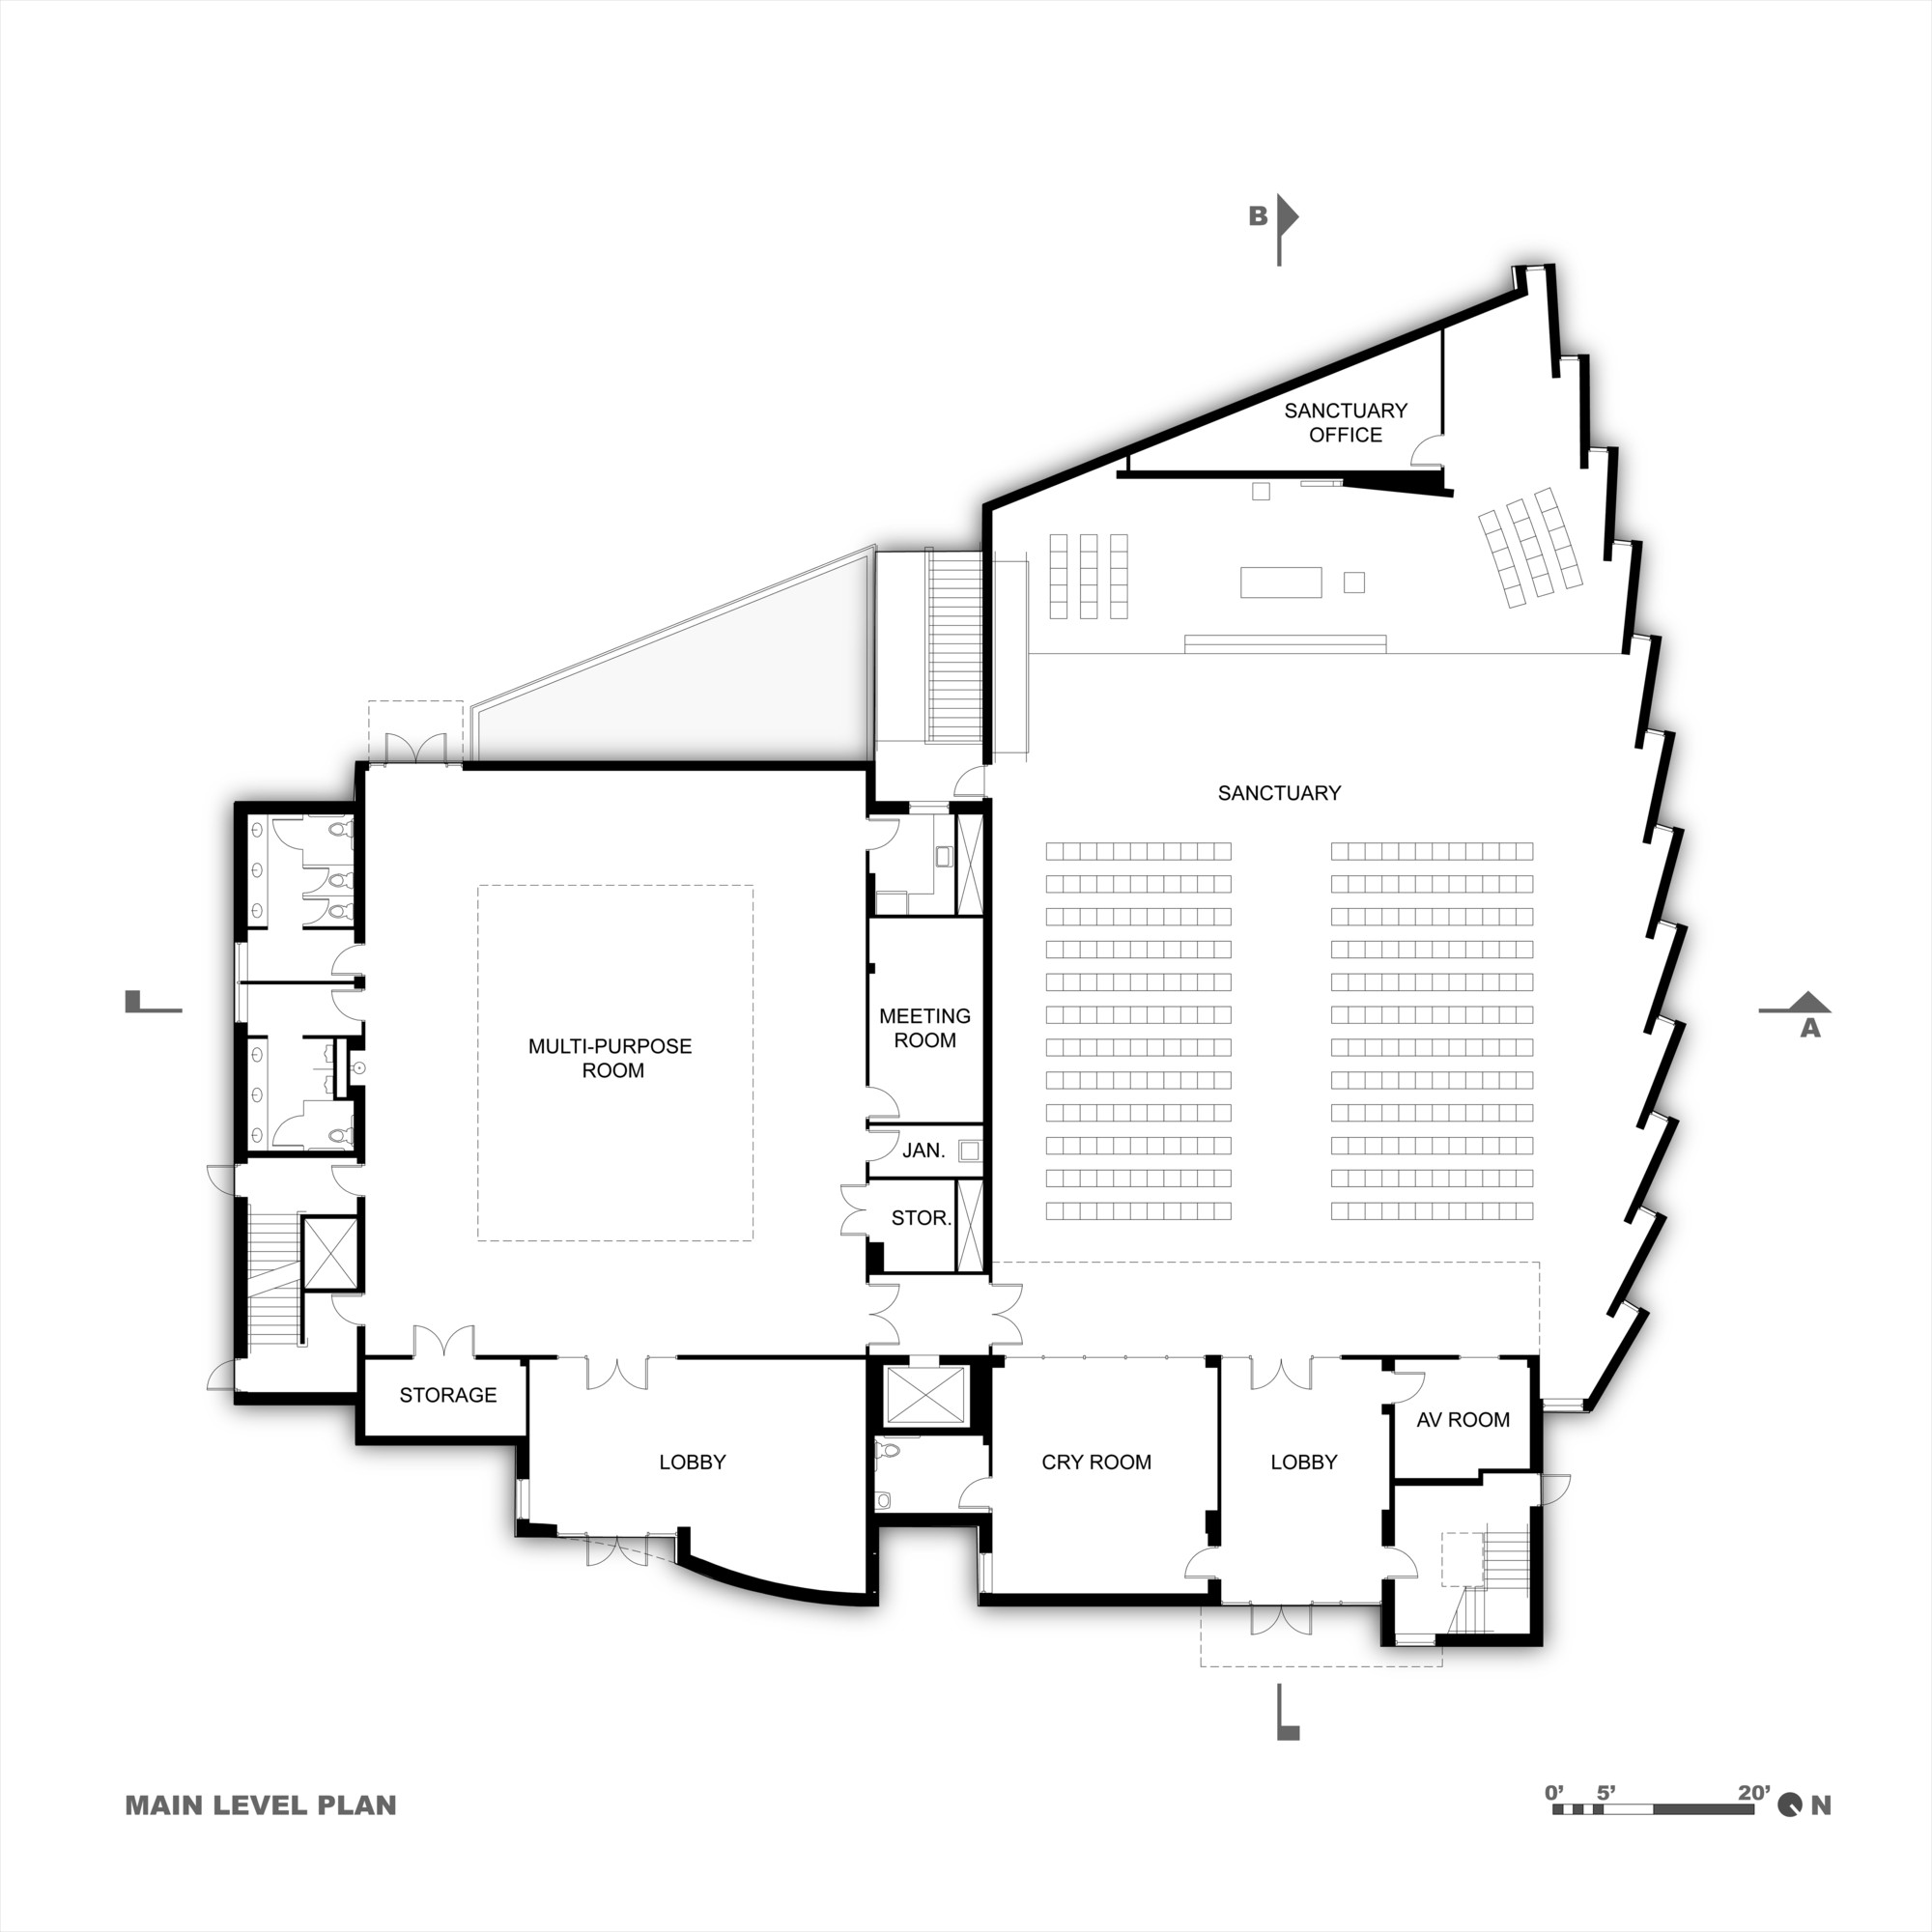 Korean presbyterian church arcari iovino architects for Floor plan church